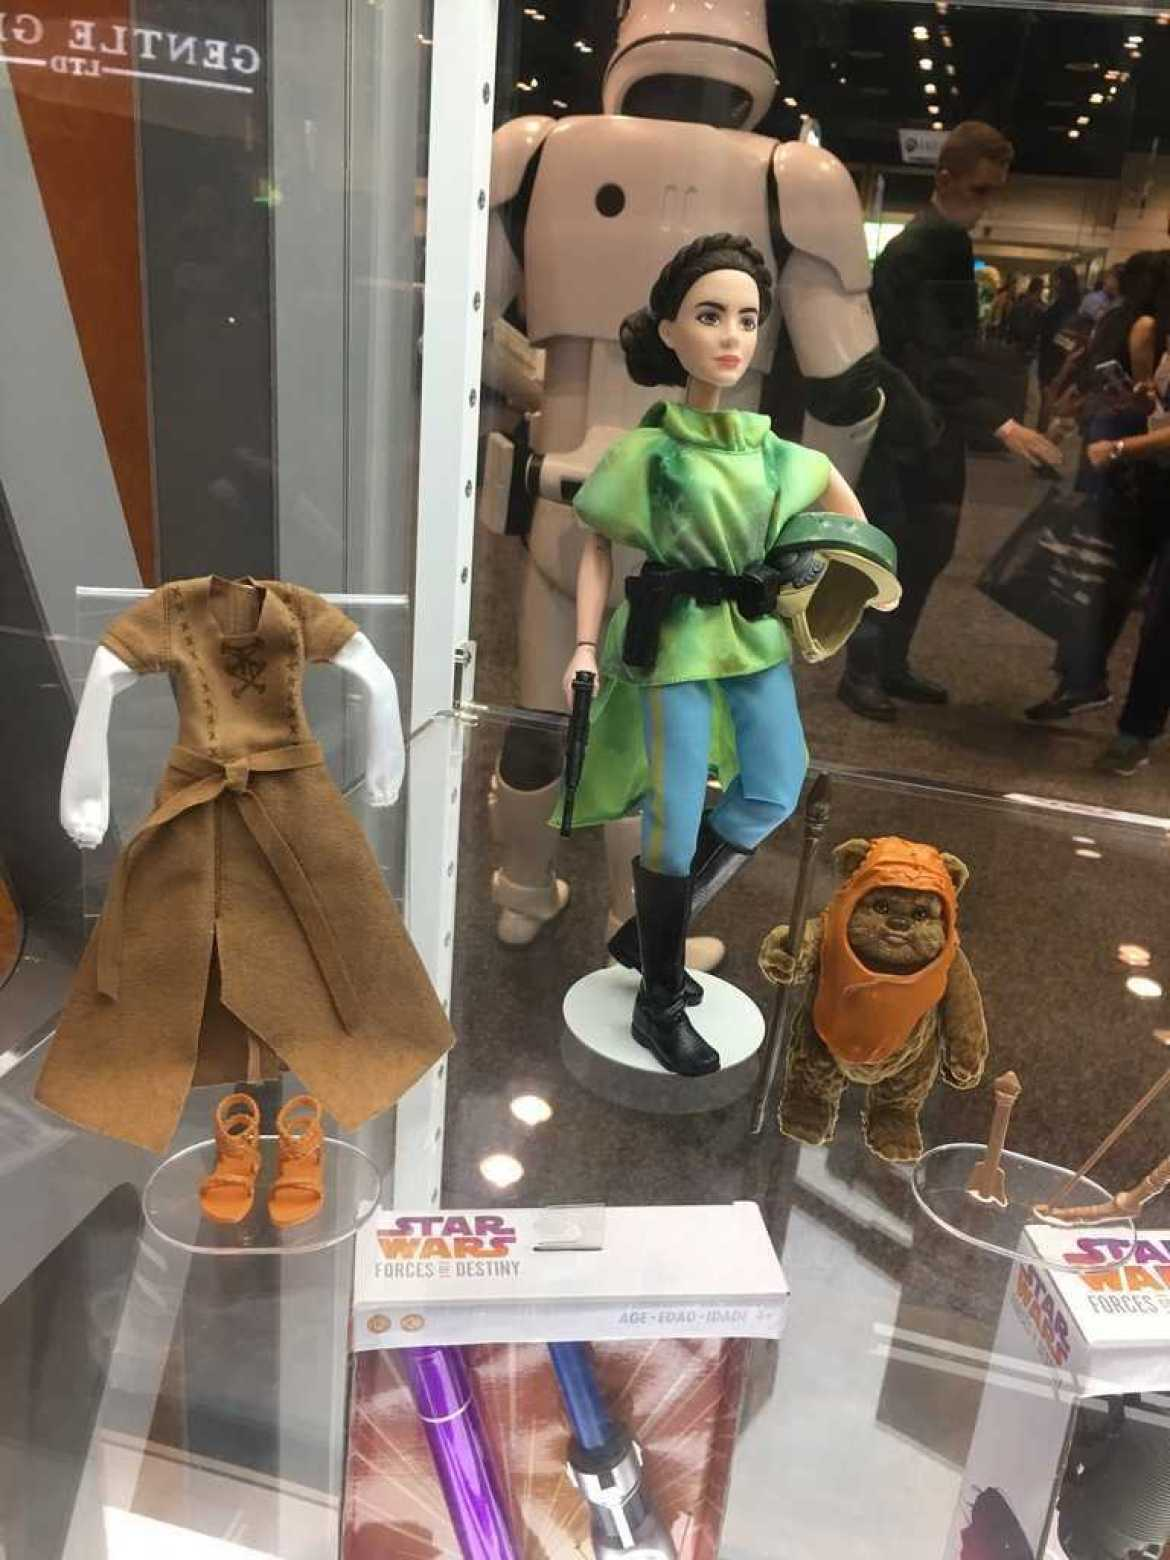 img 1227 - Star Wars: Forces of Destiny action doll gallery